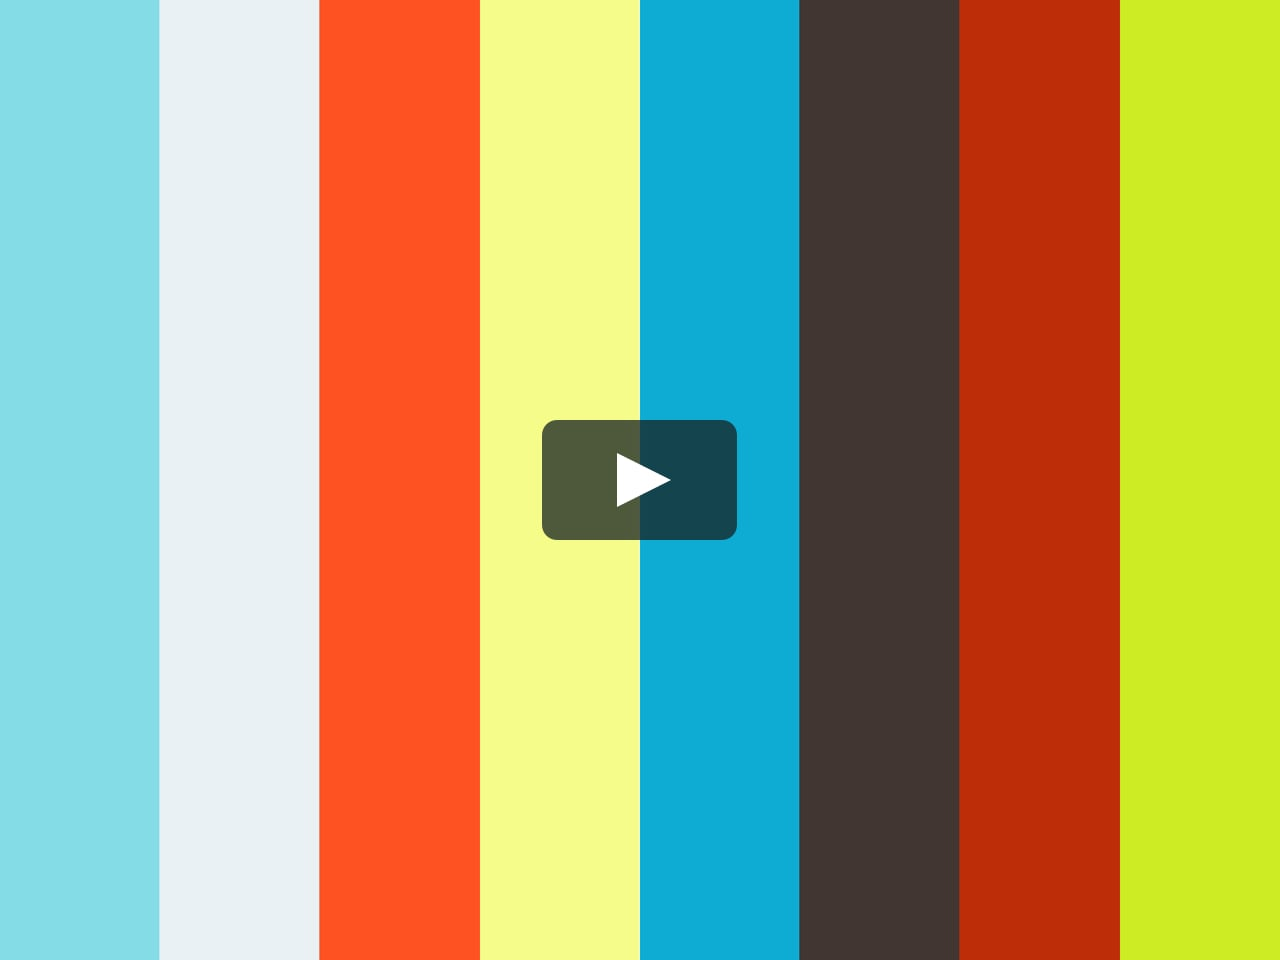 jeep compass patriot repair manual 2007 2008 2009 2010 on. Black Bedroom Furniture Sets. Home Design Ideas